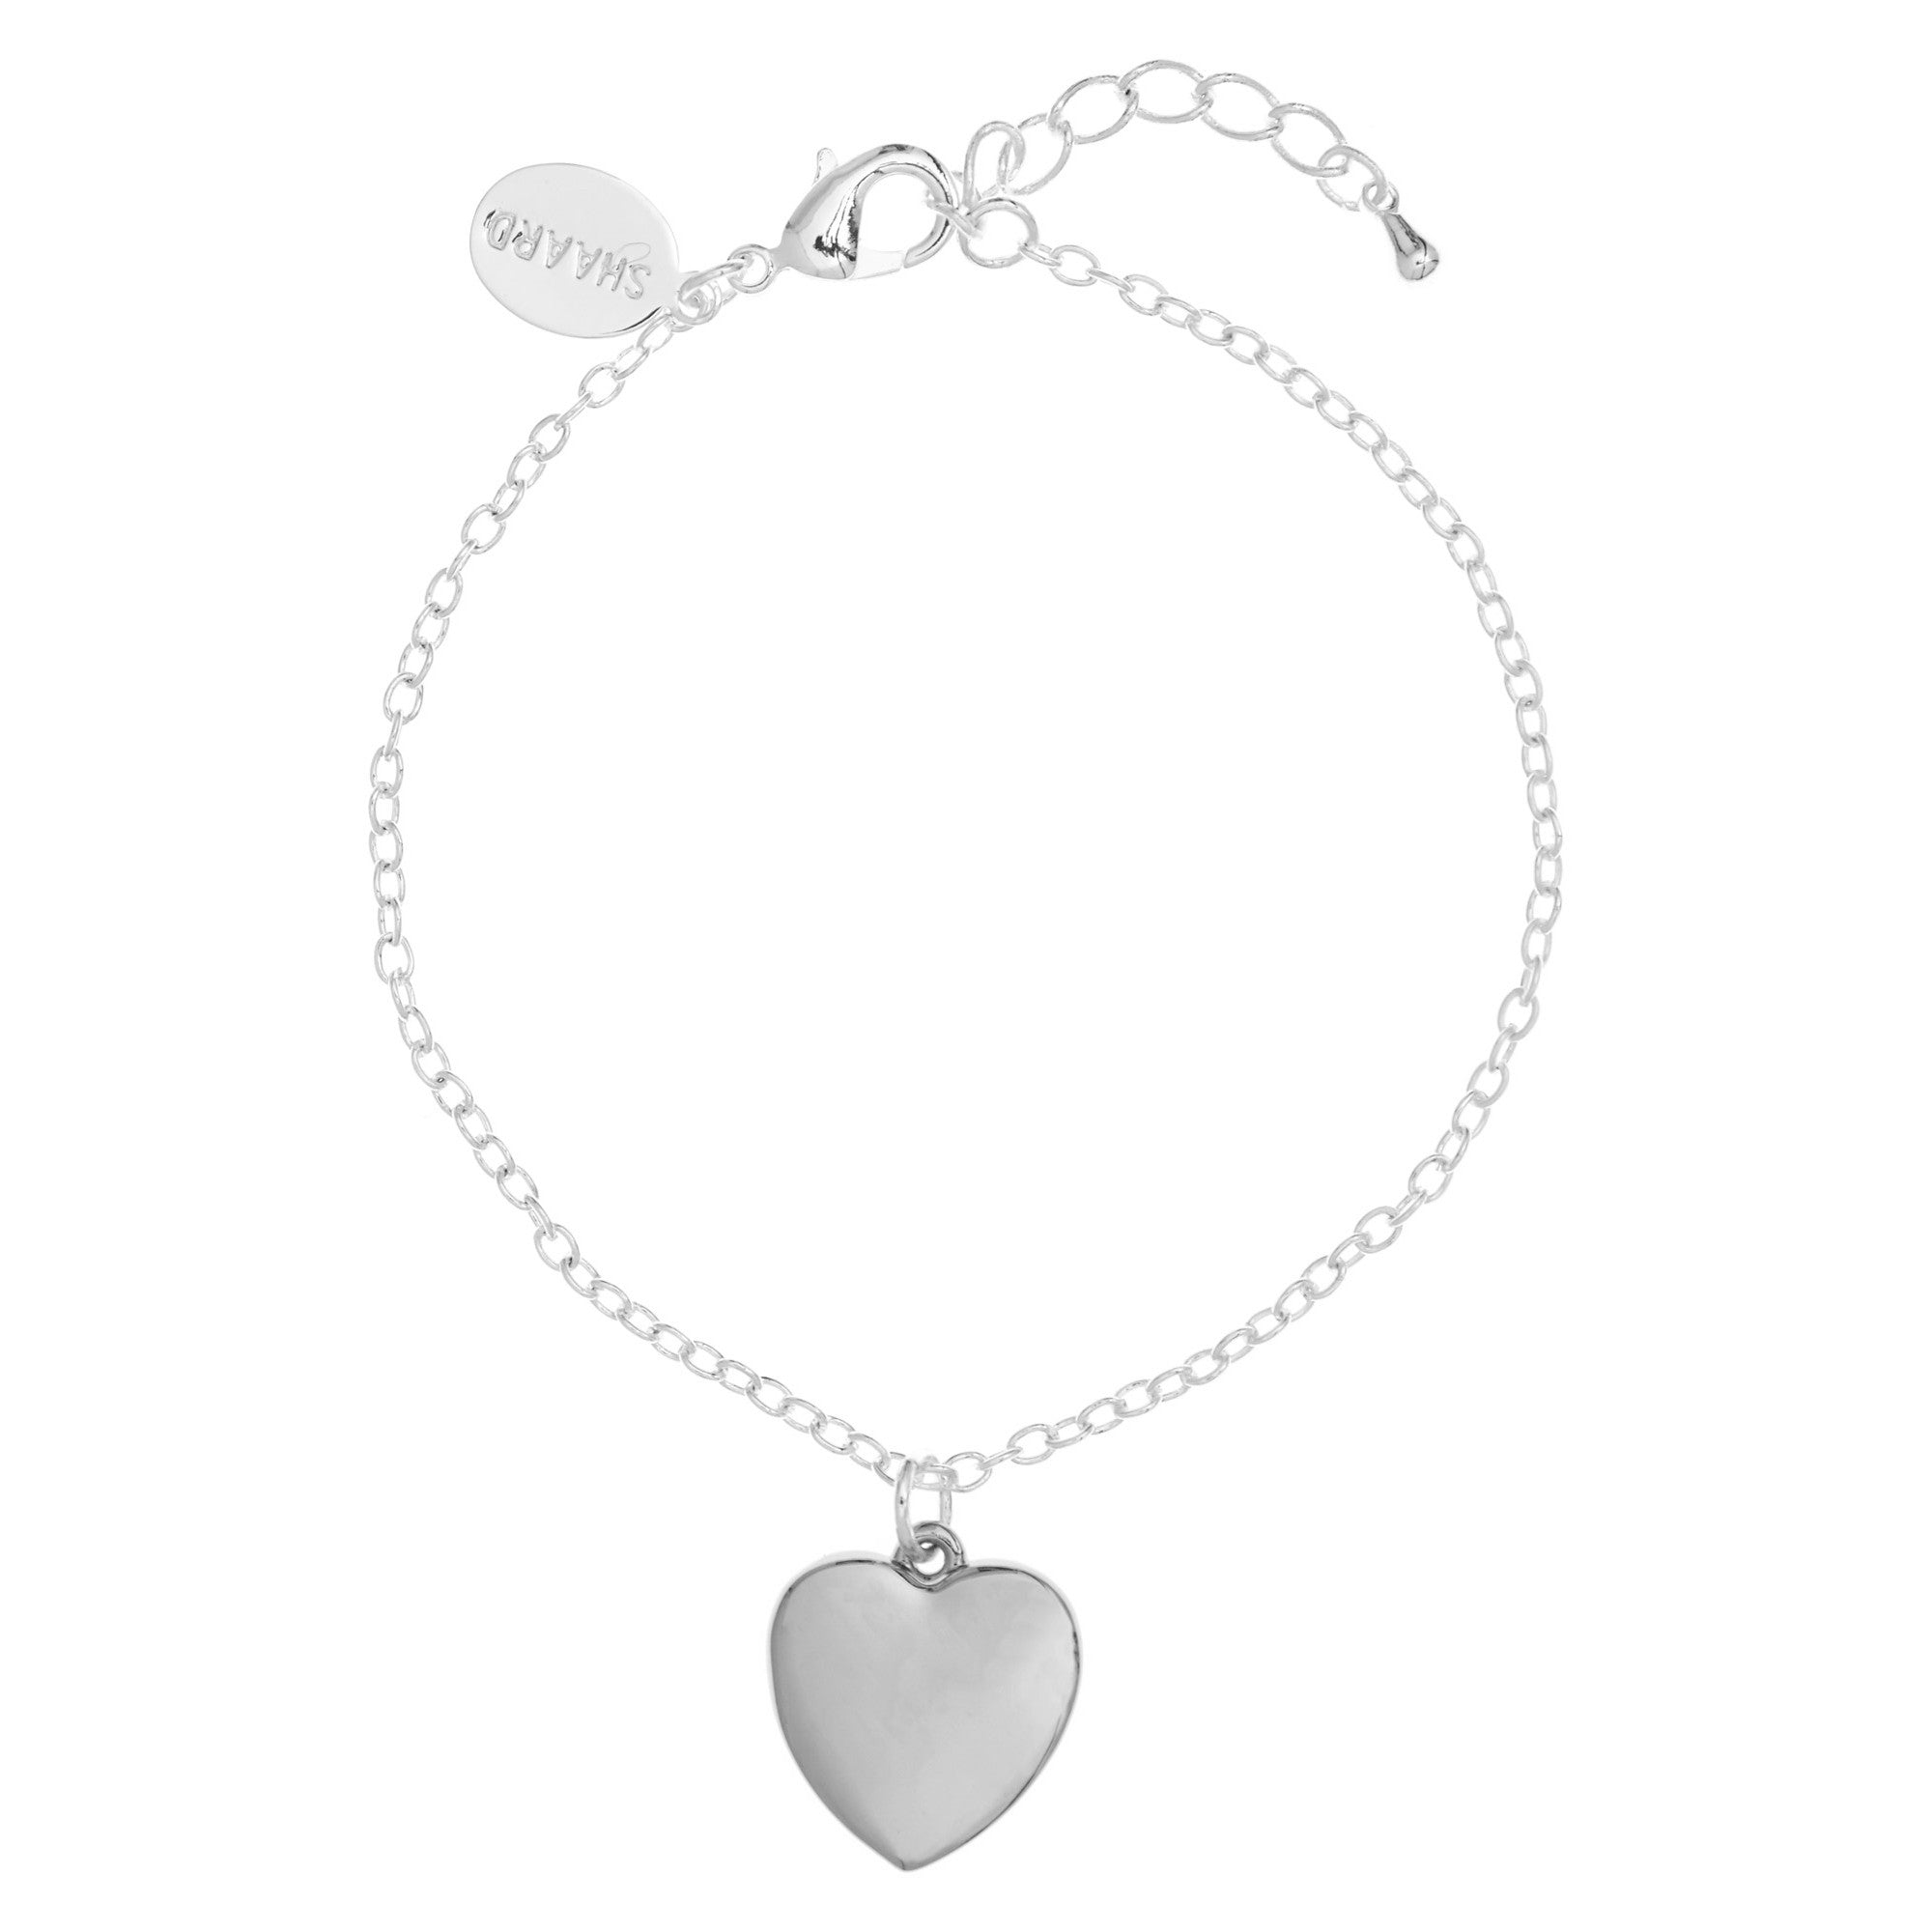 rg bracelet jewellery bj products gold heart anatomic